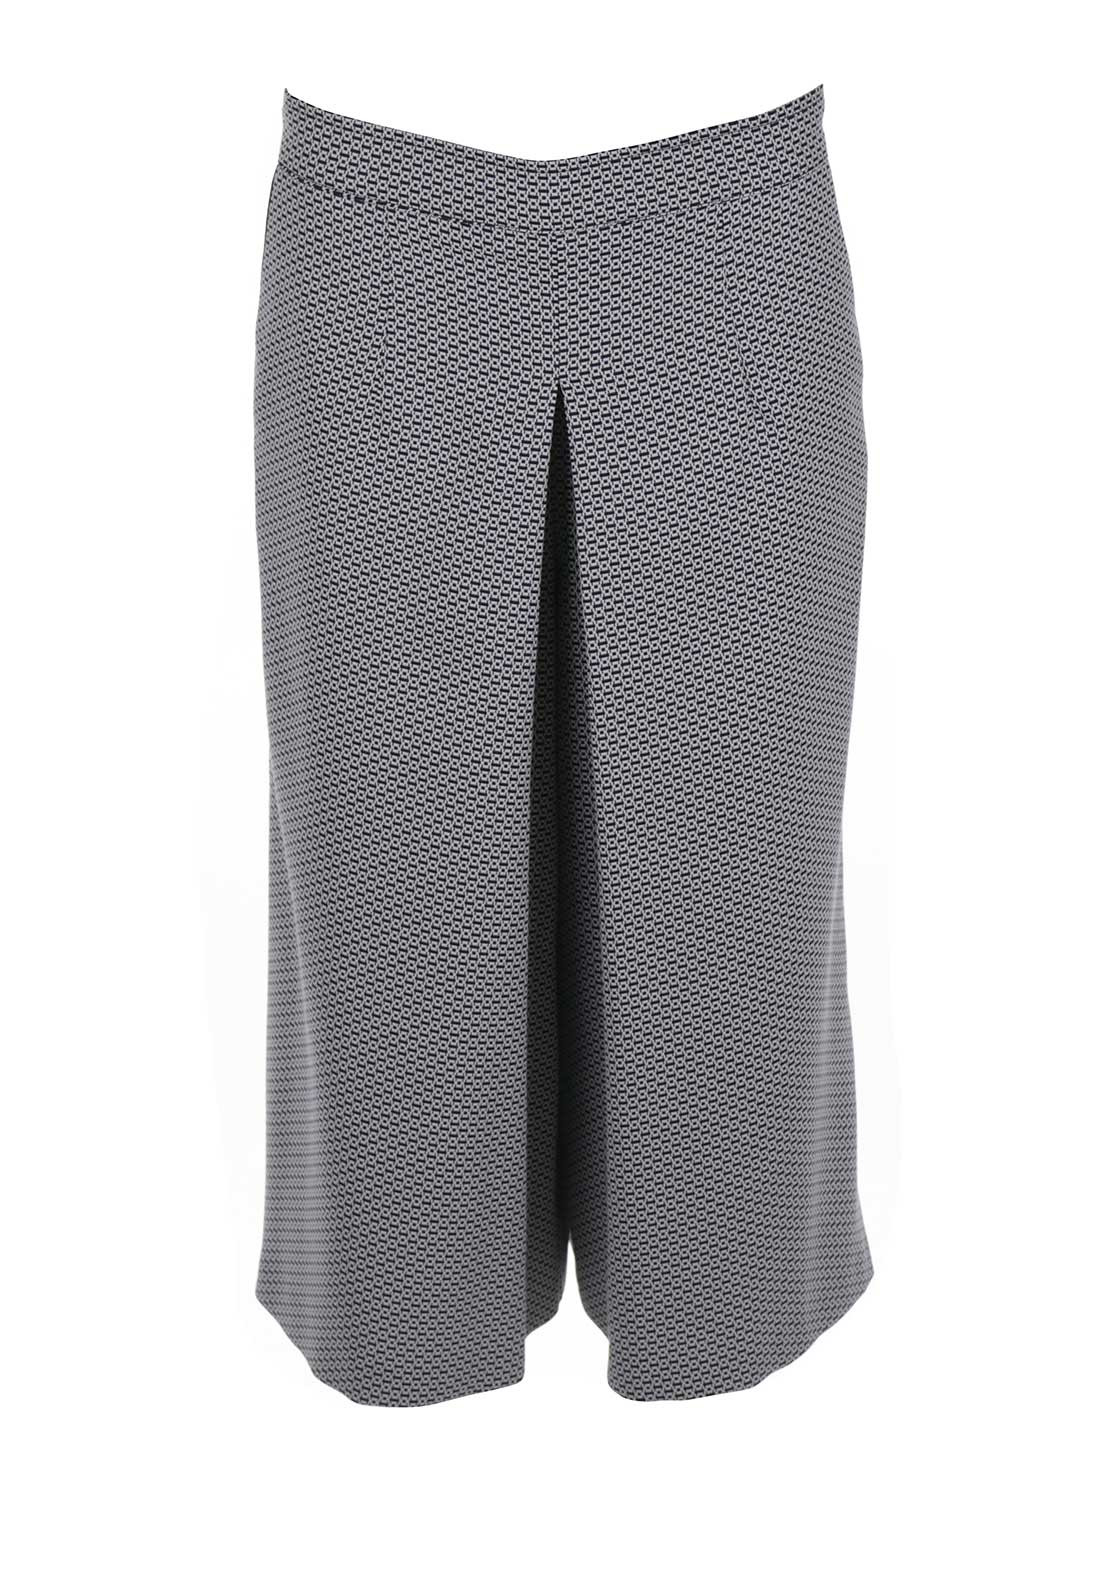 Peruzzi Printed Wide Leg Culotte Trousers, Navy